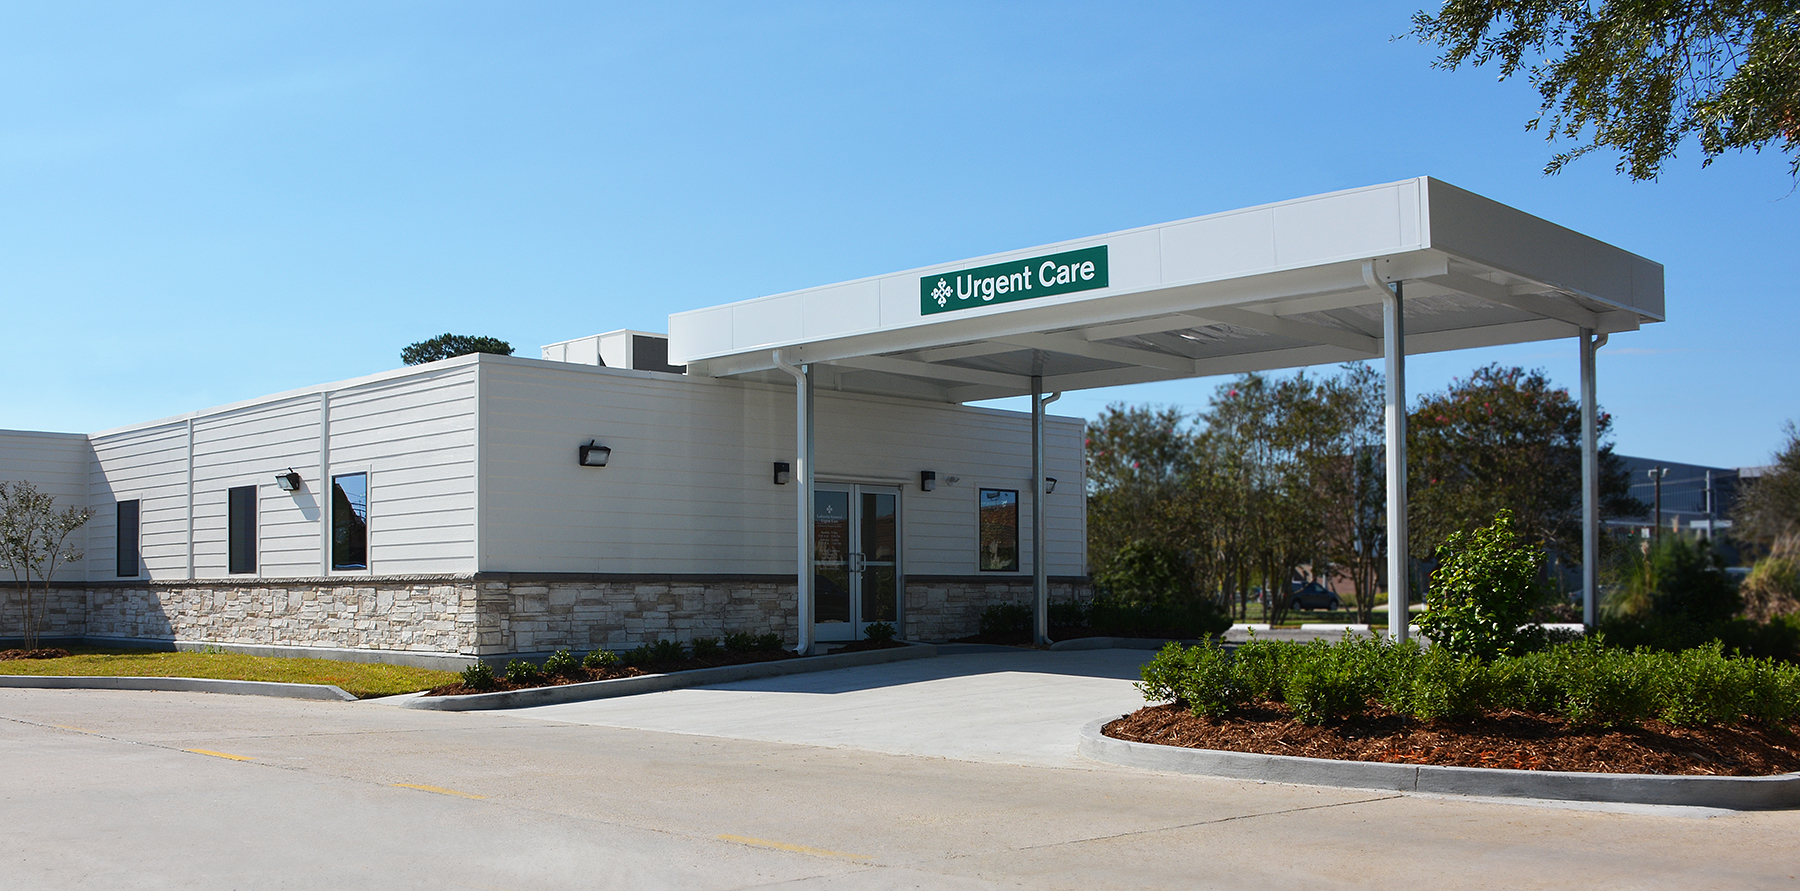 Urgent Care Walk-In Clinic at UHC